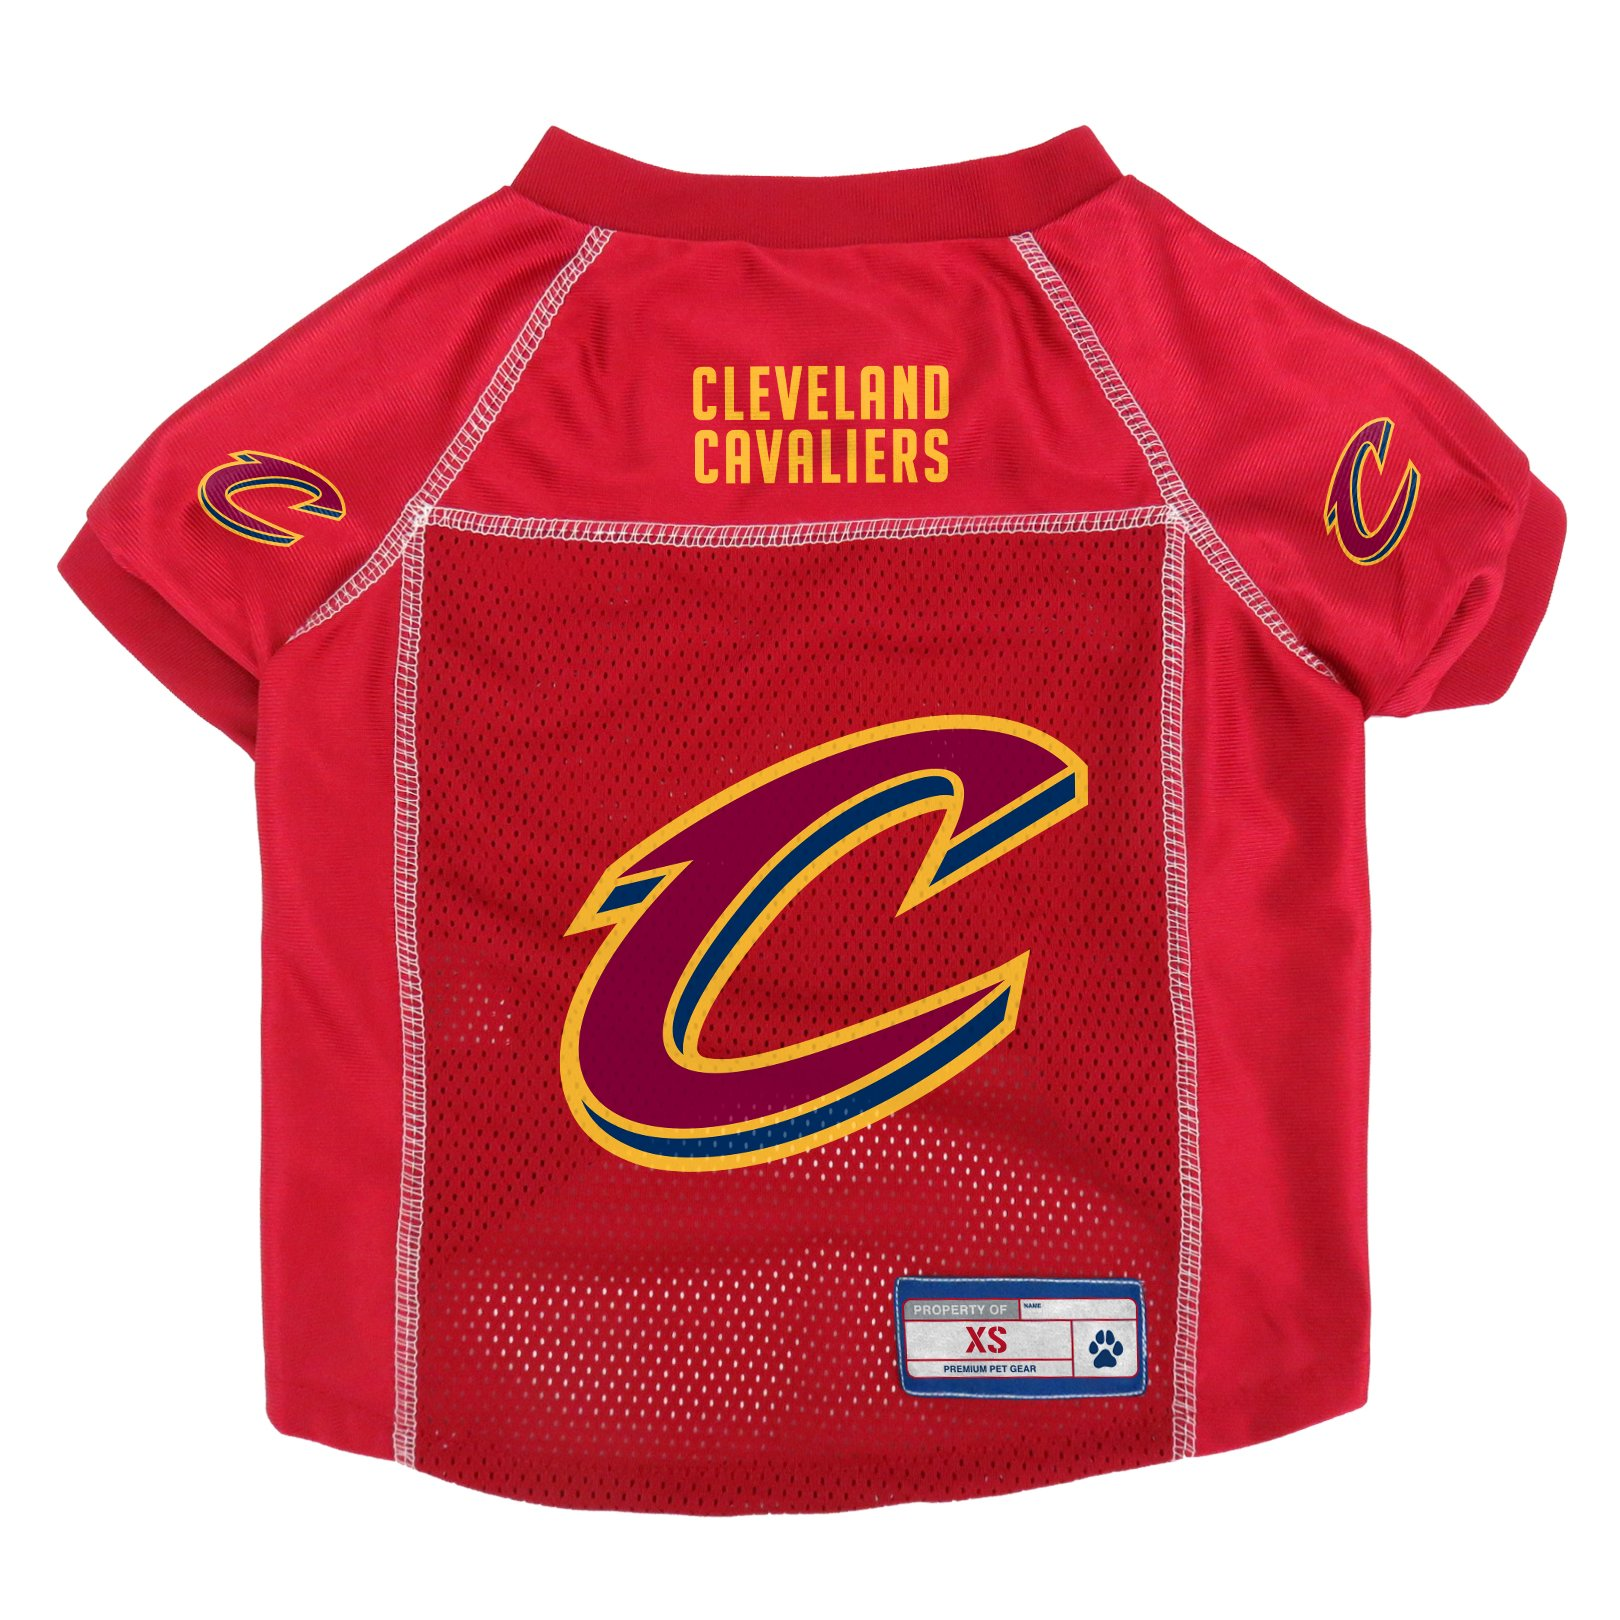 Cleveland Cavaliers Official NBA Pet Jersey Size XS by Little Earth 875022 by Littlearth